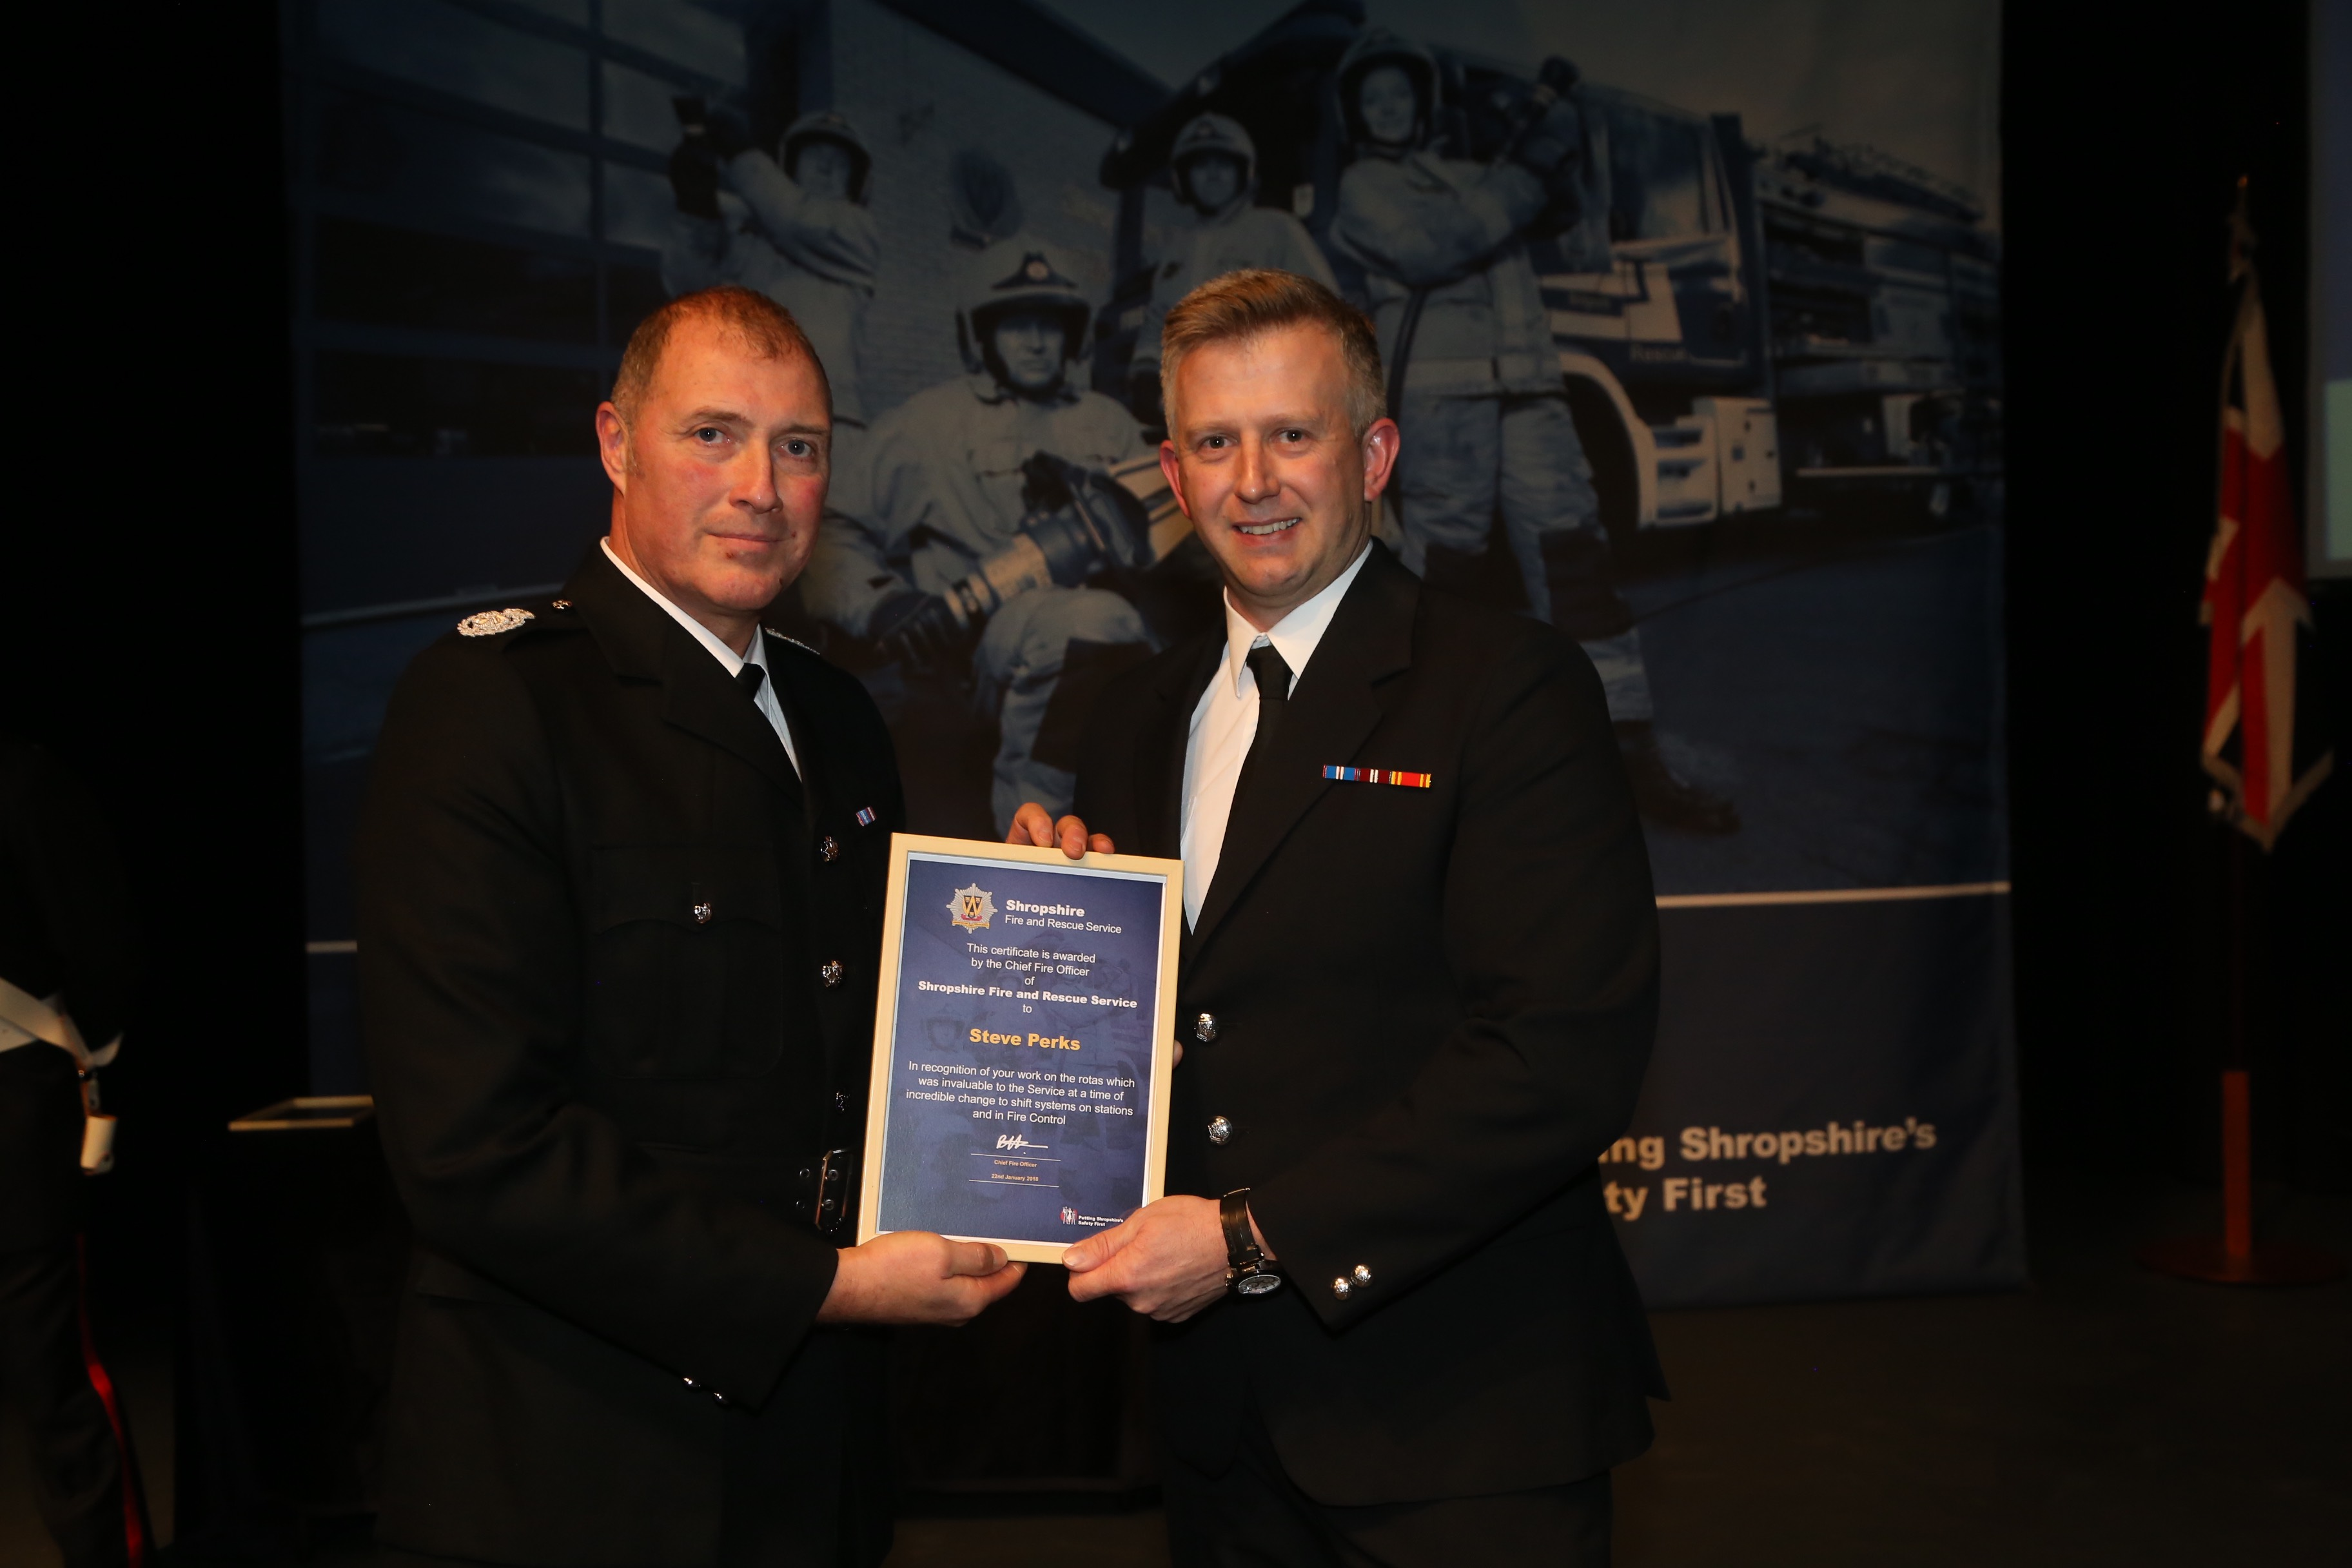 Steve Perks receives a certificate of recognition for exemplary service